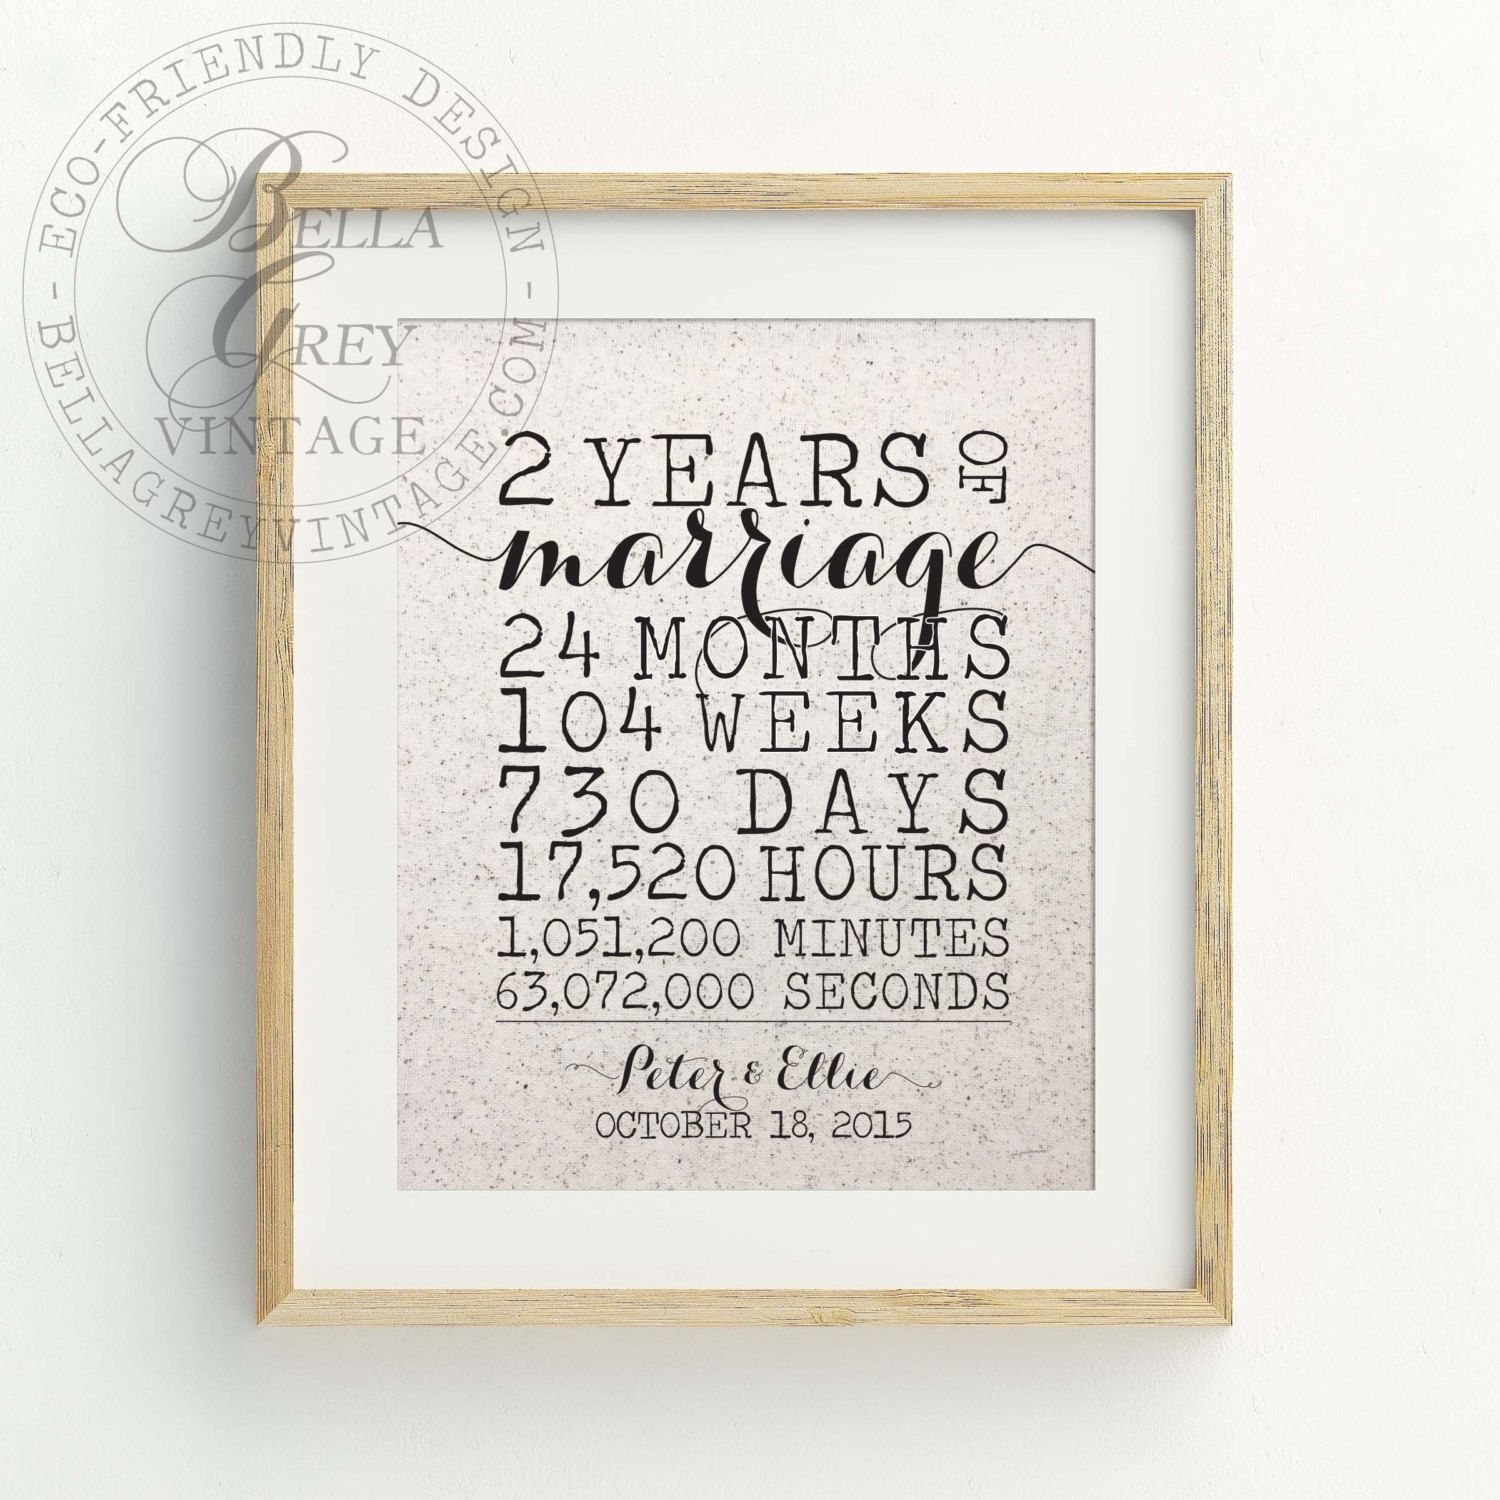 Personalized 2nd Cotton Anniversary Gift, 2 Year Wedding